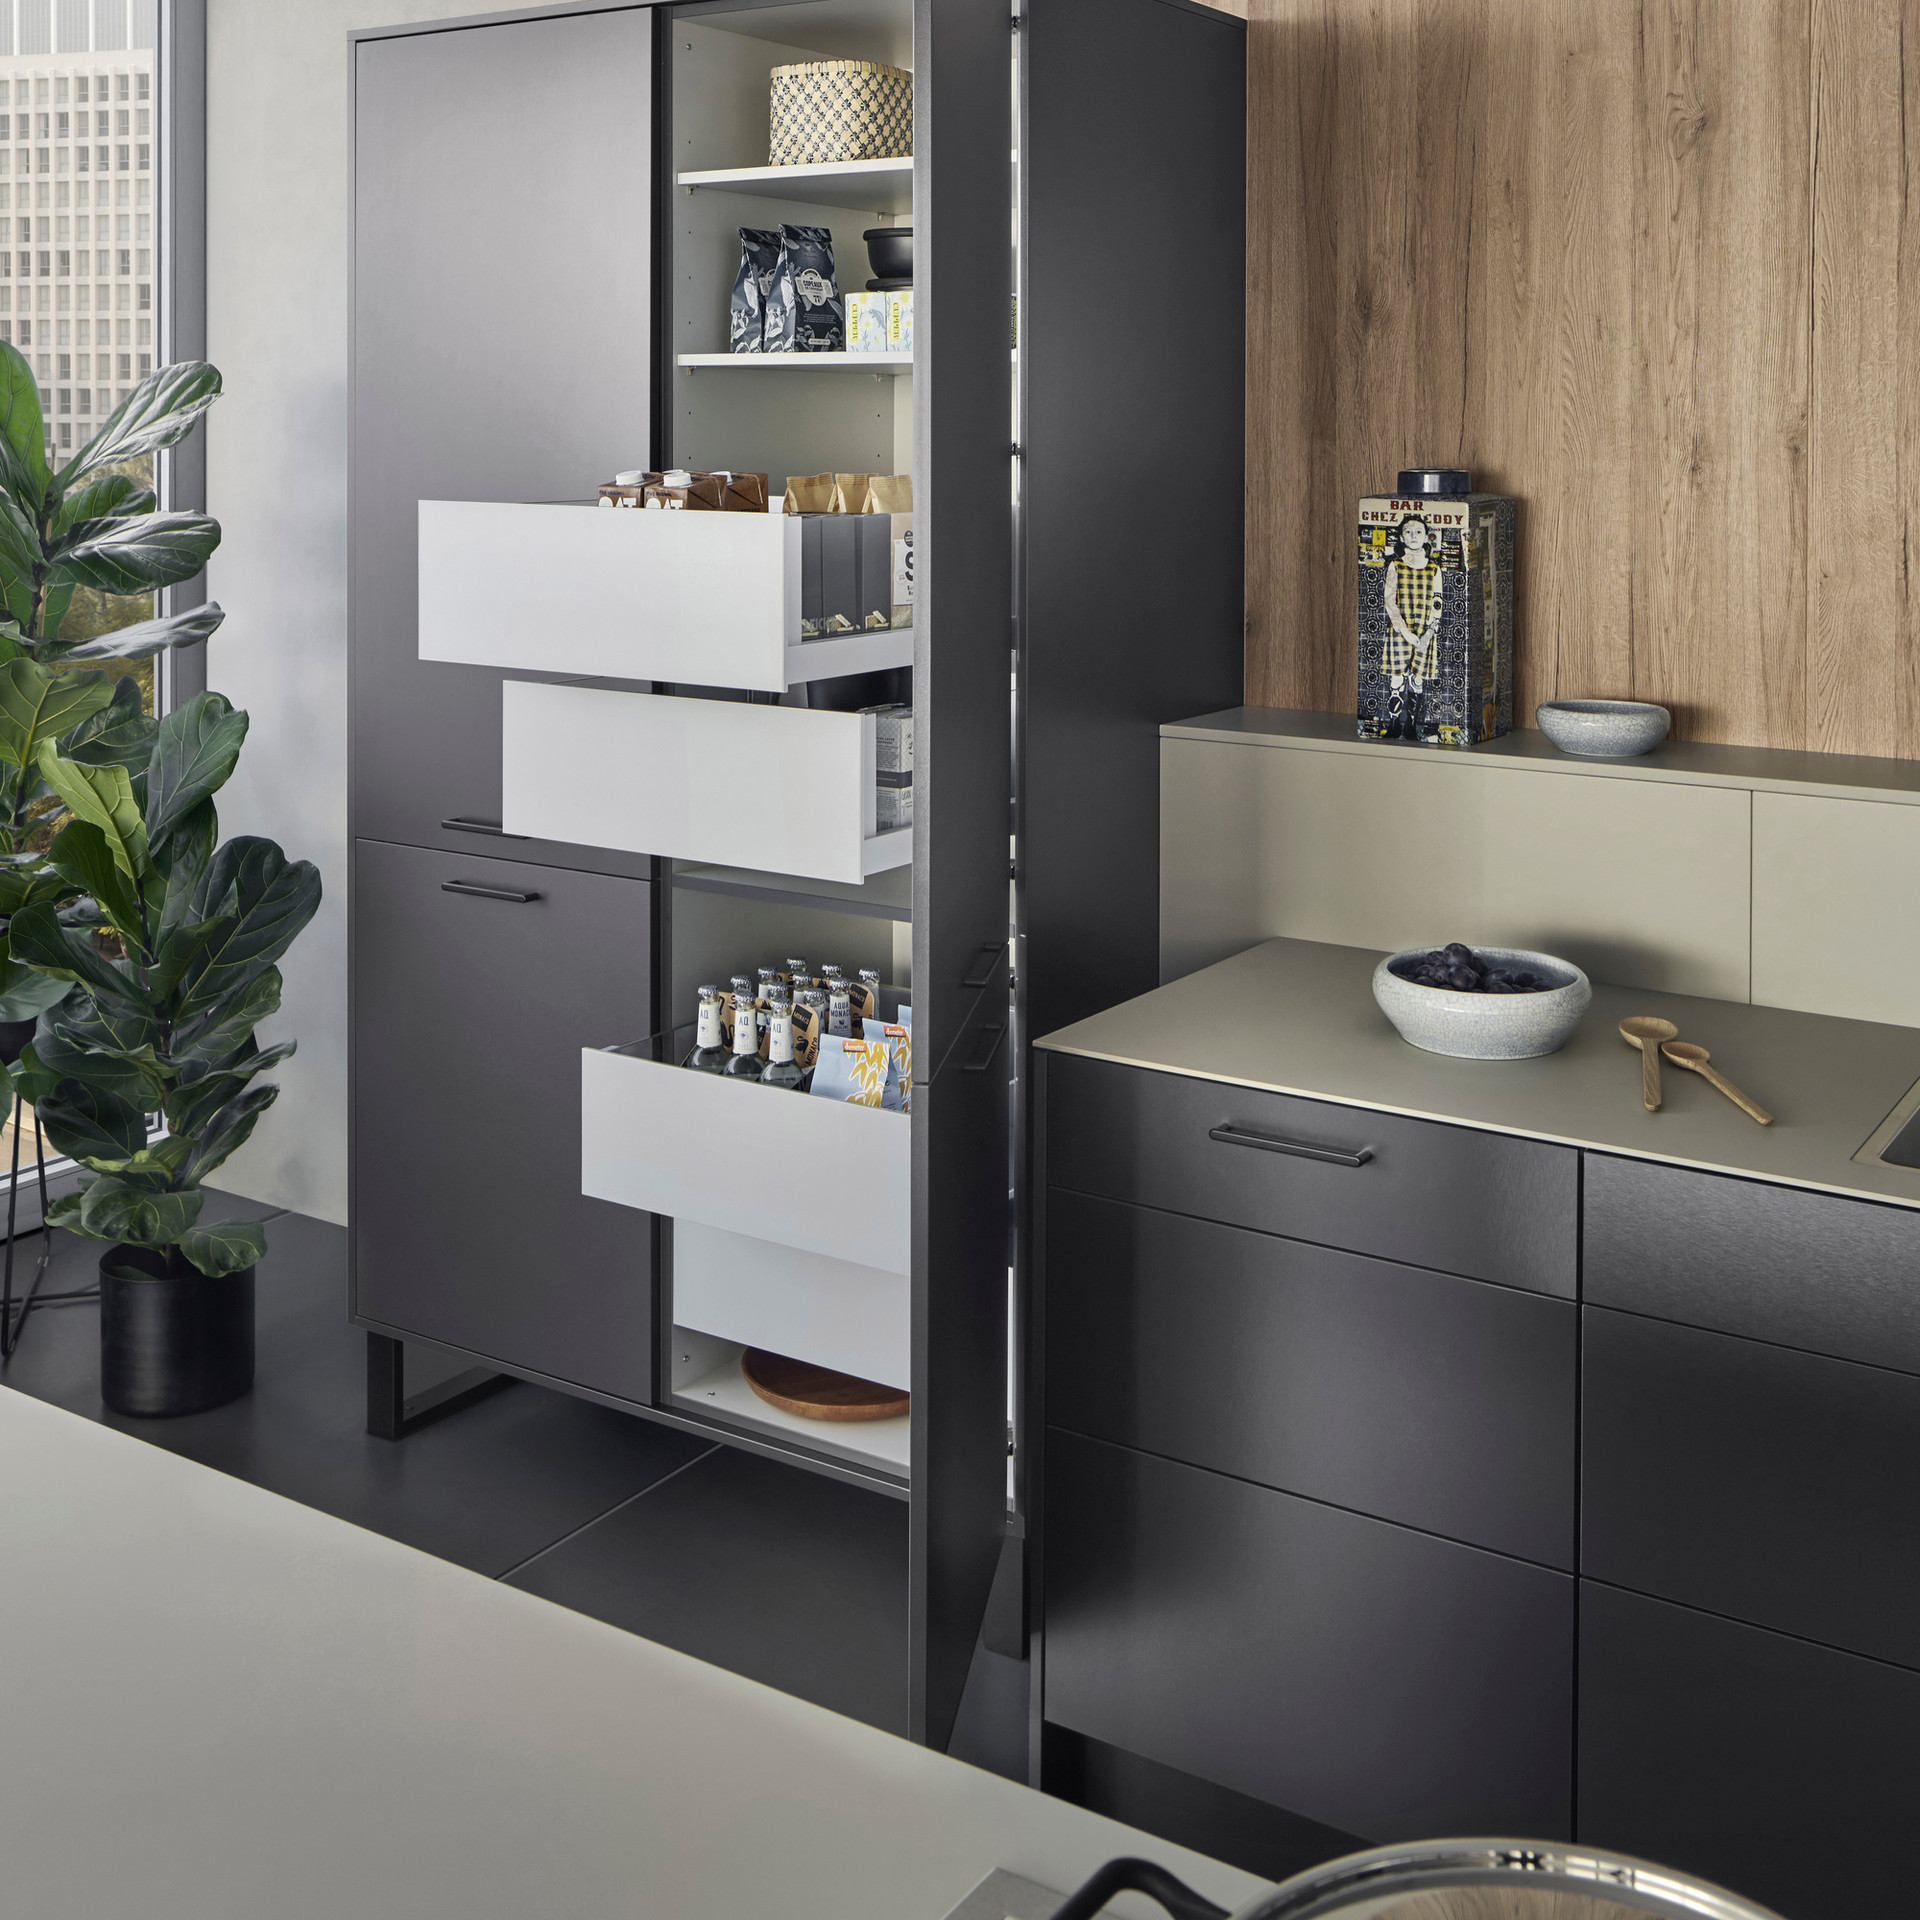 Leicht Metea metallic finish pantry